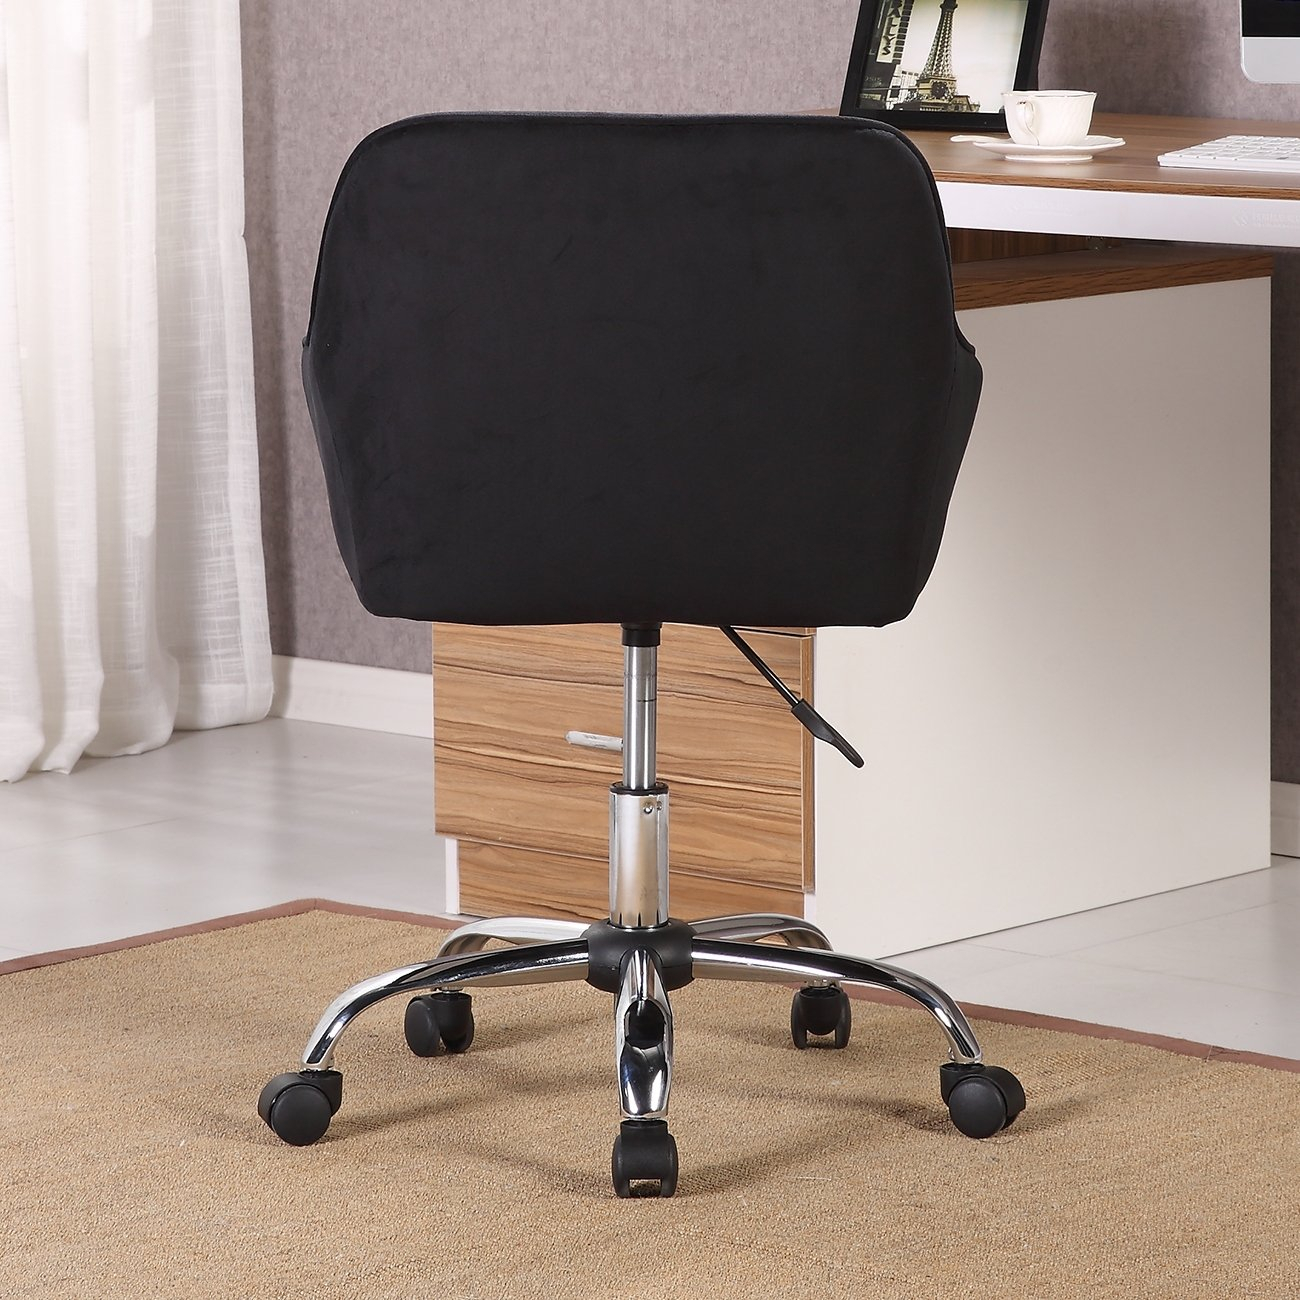 Shop Belleze Modern Office Chair Task Desk Adjustable Swivel Height Intended For Katrina Blue Swivel Glider Chairs (View 15 of 25)